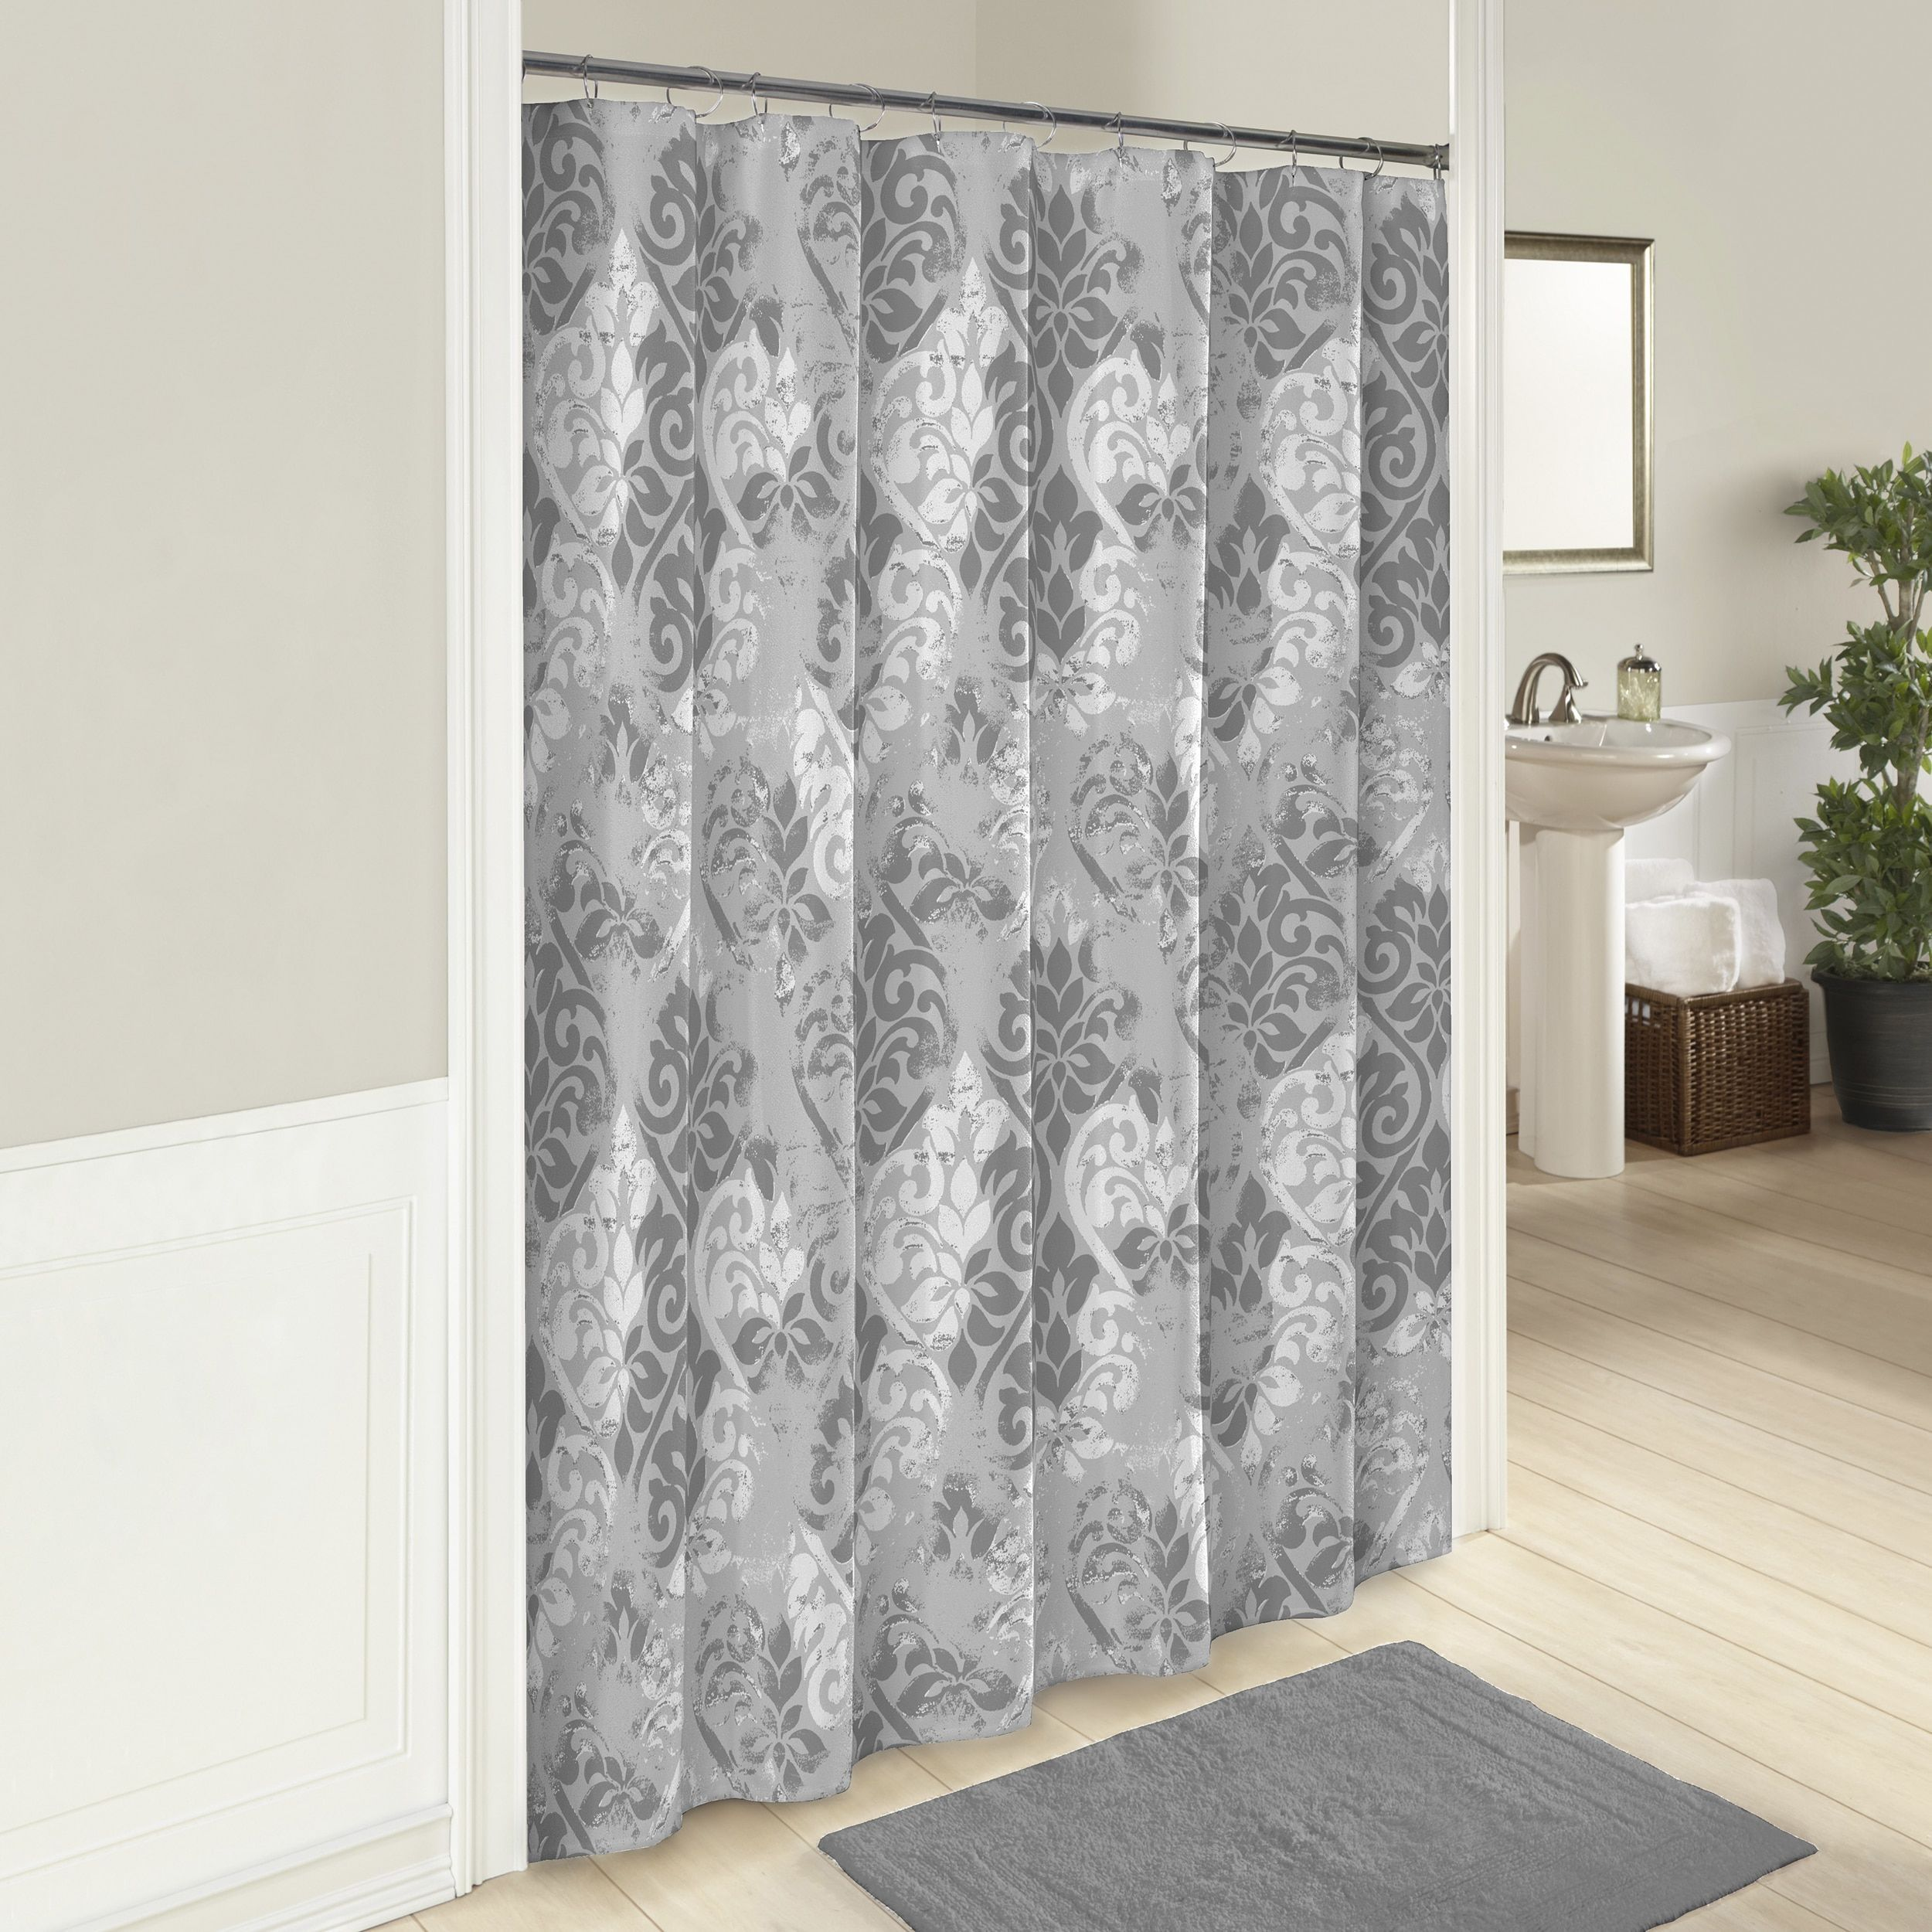 Marble hill cheyanne shower curtain inch multi grey marbles